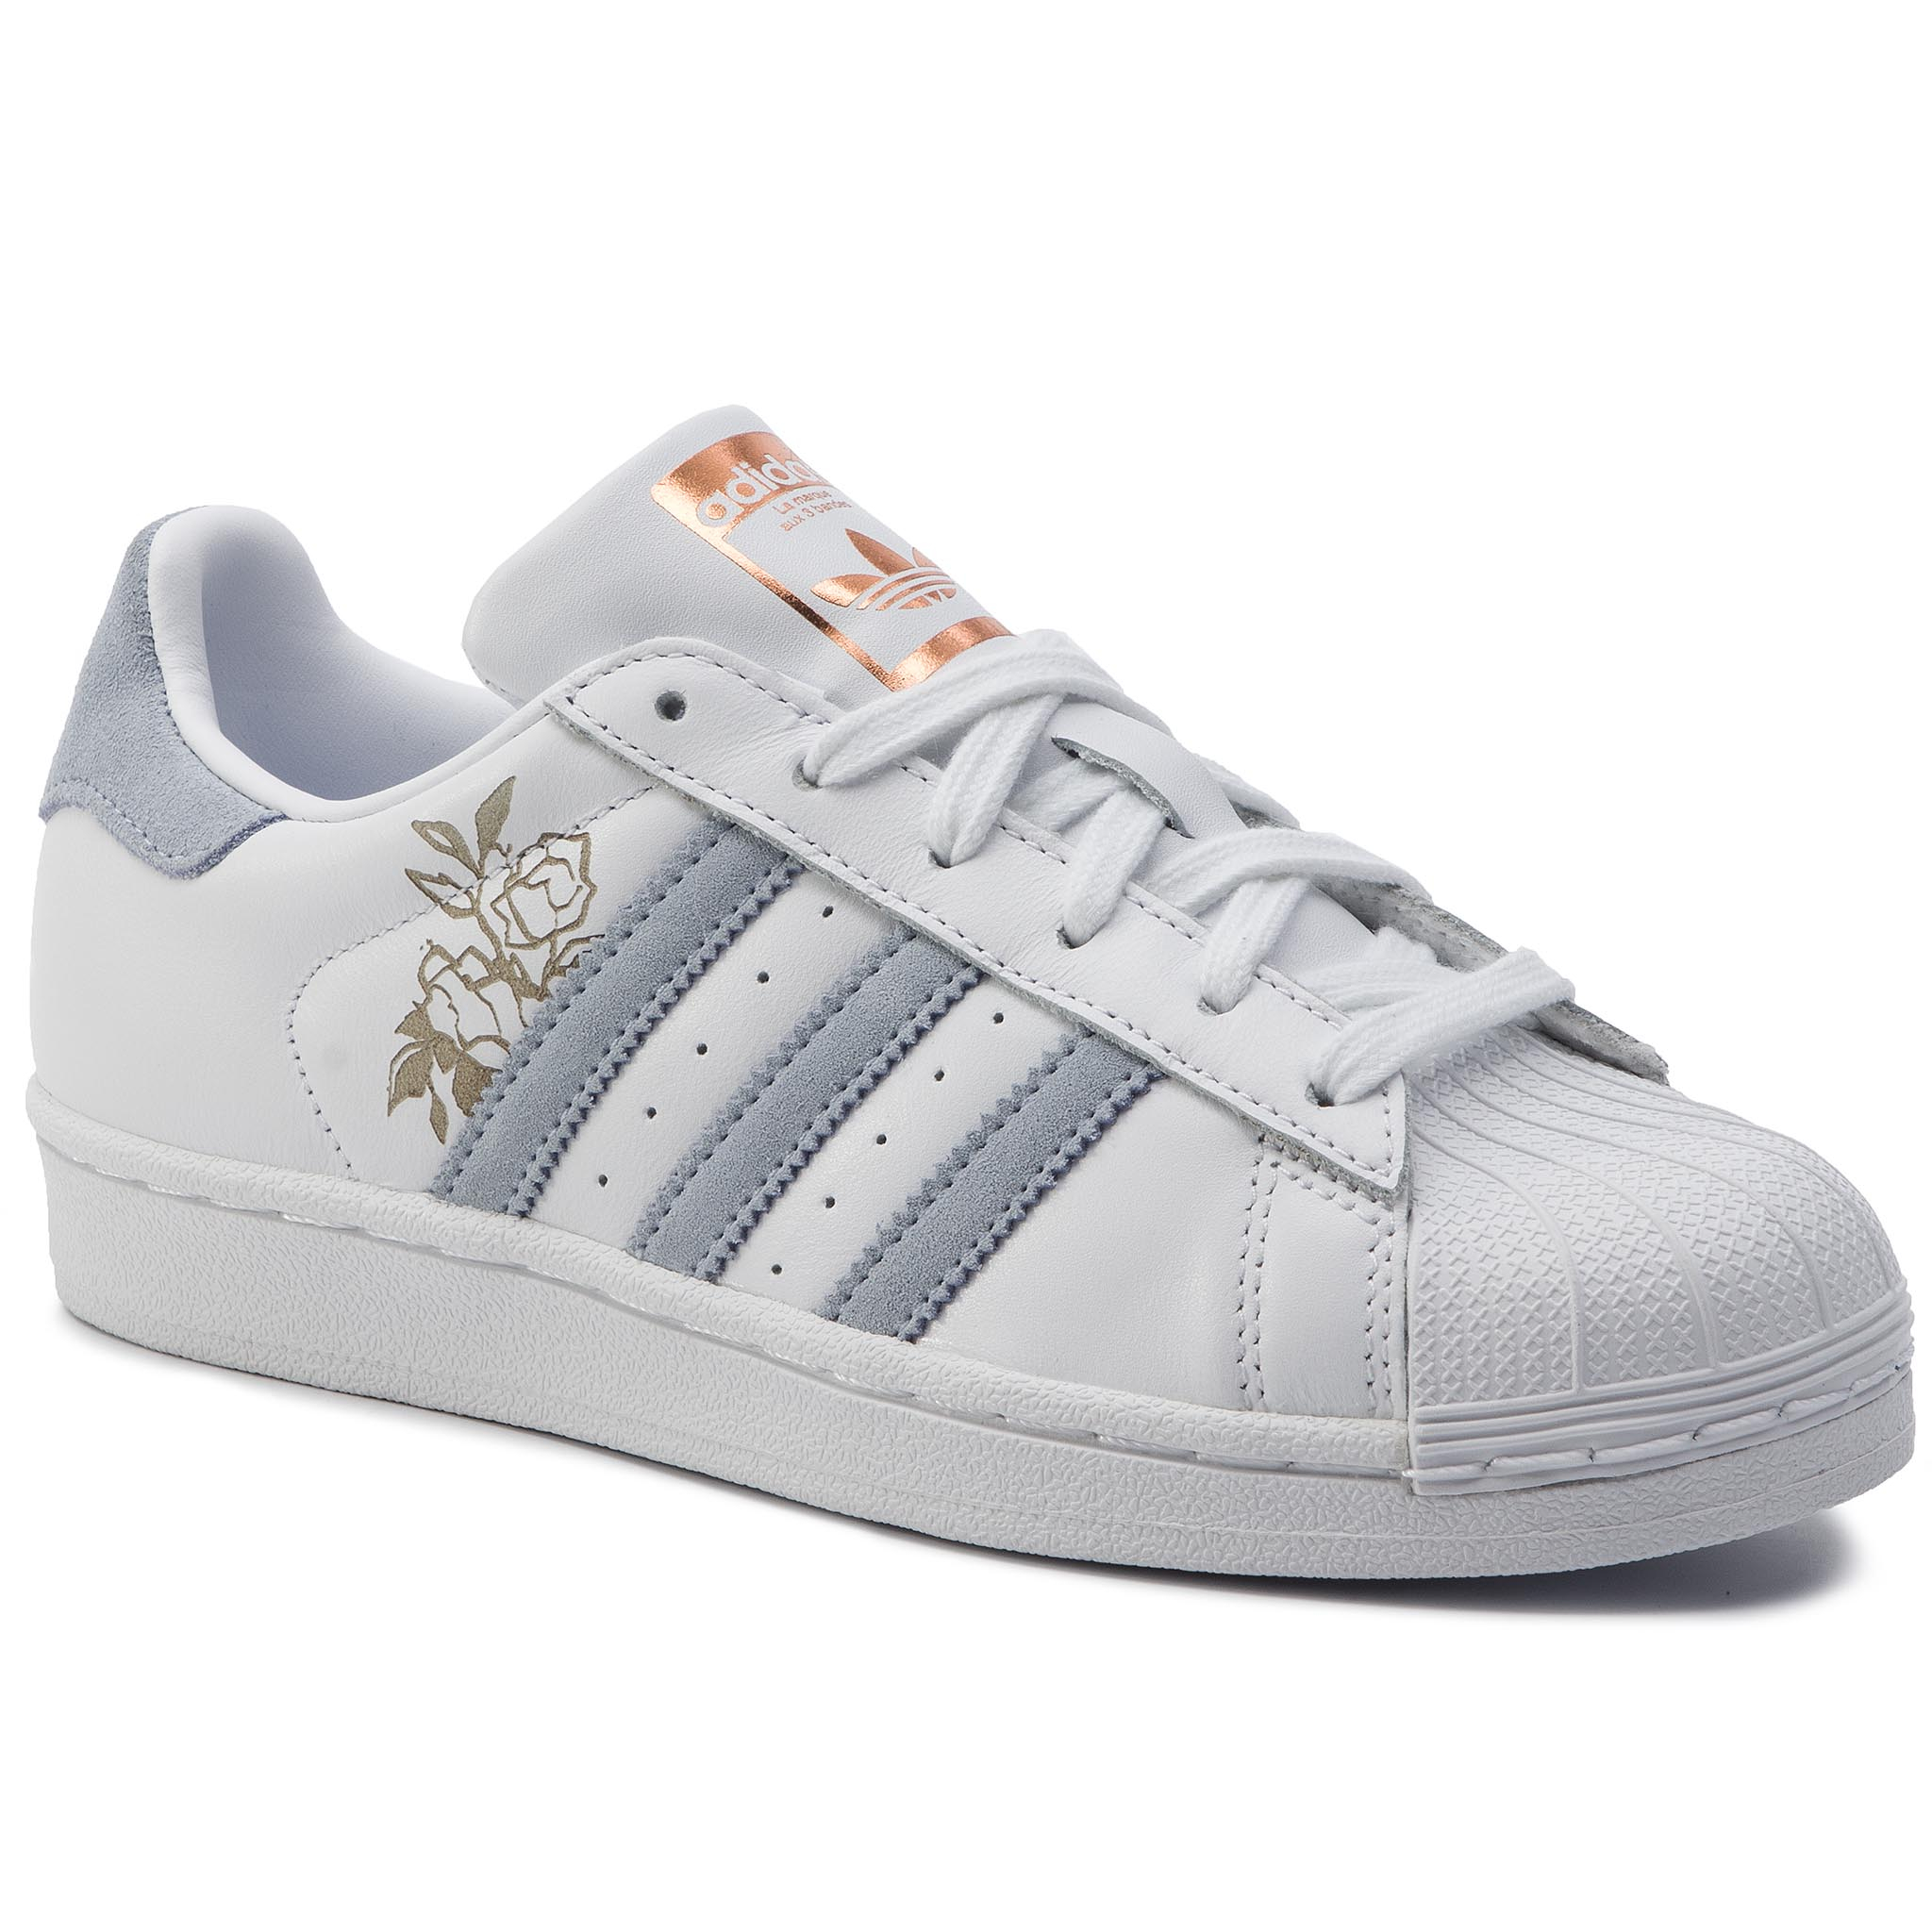 0a578405a1 Shoes adidas - Superstar W DA9099 Supcol/Ftwwht/Cblack - Sneakers ...